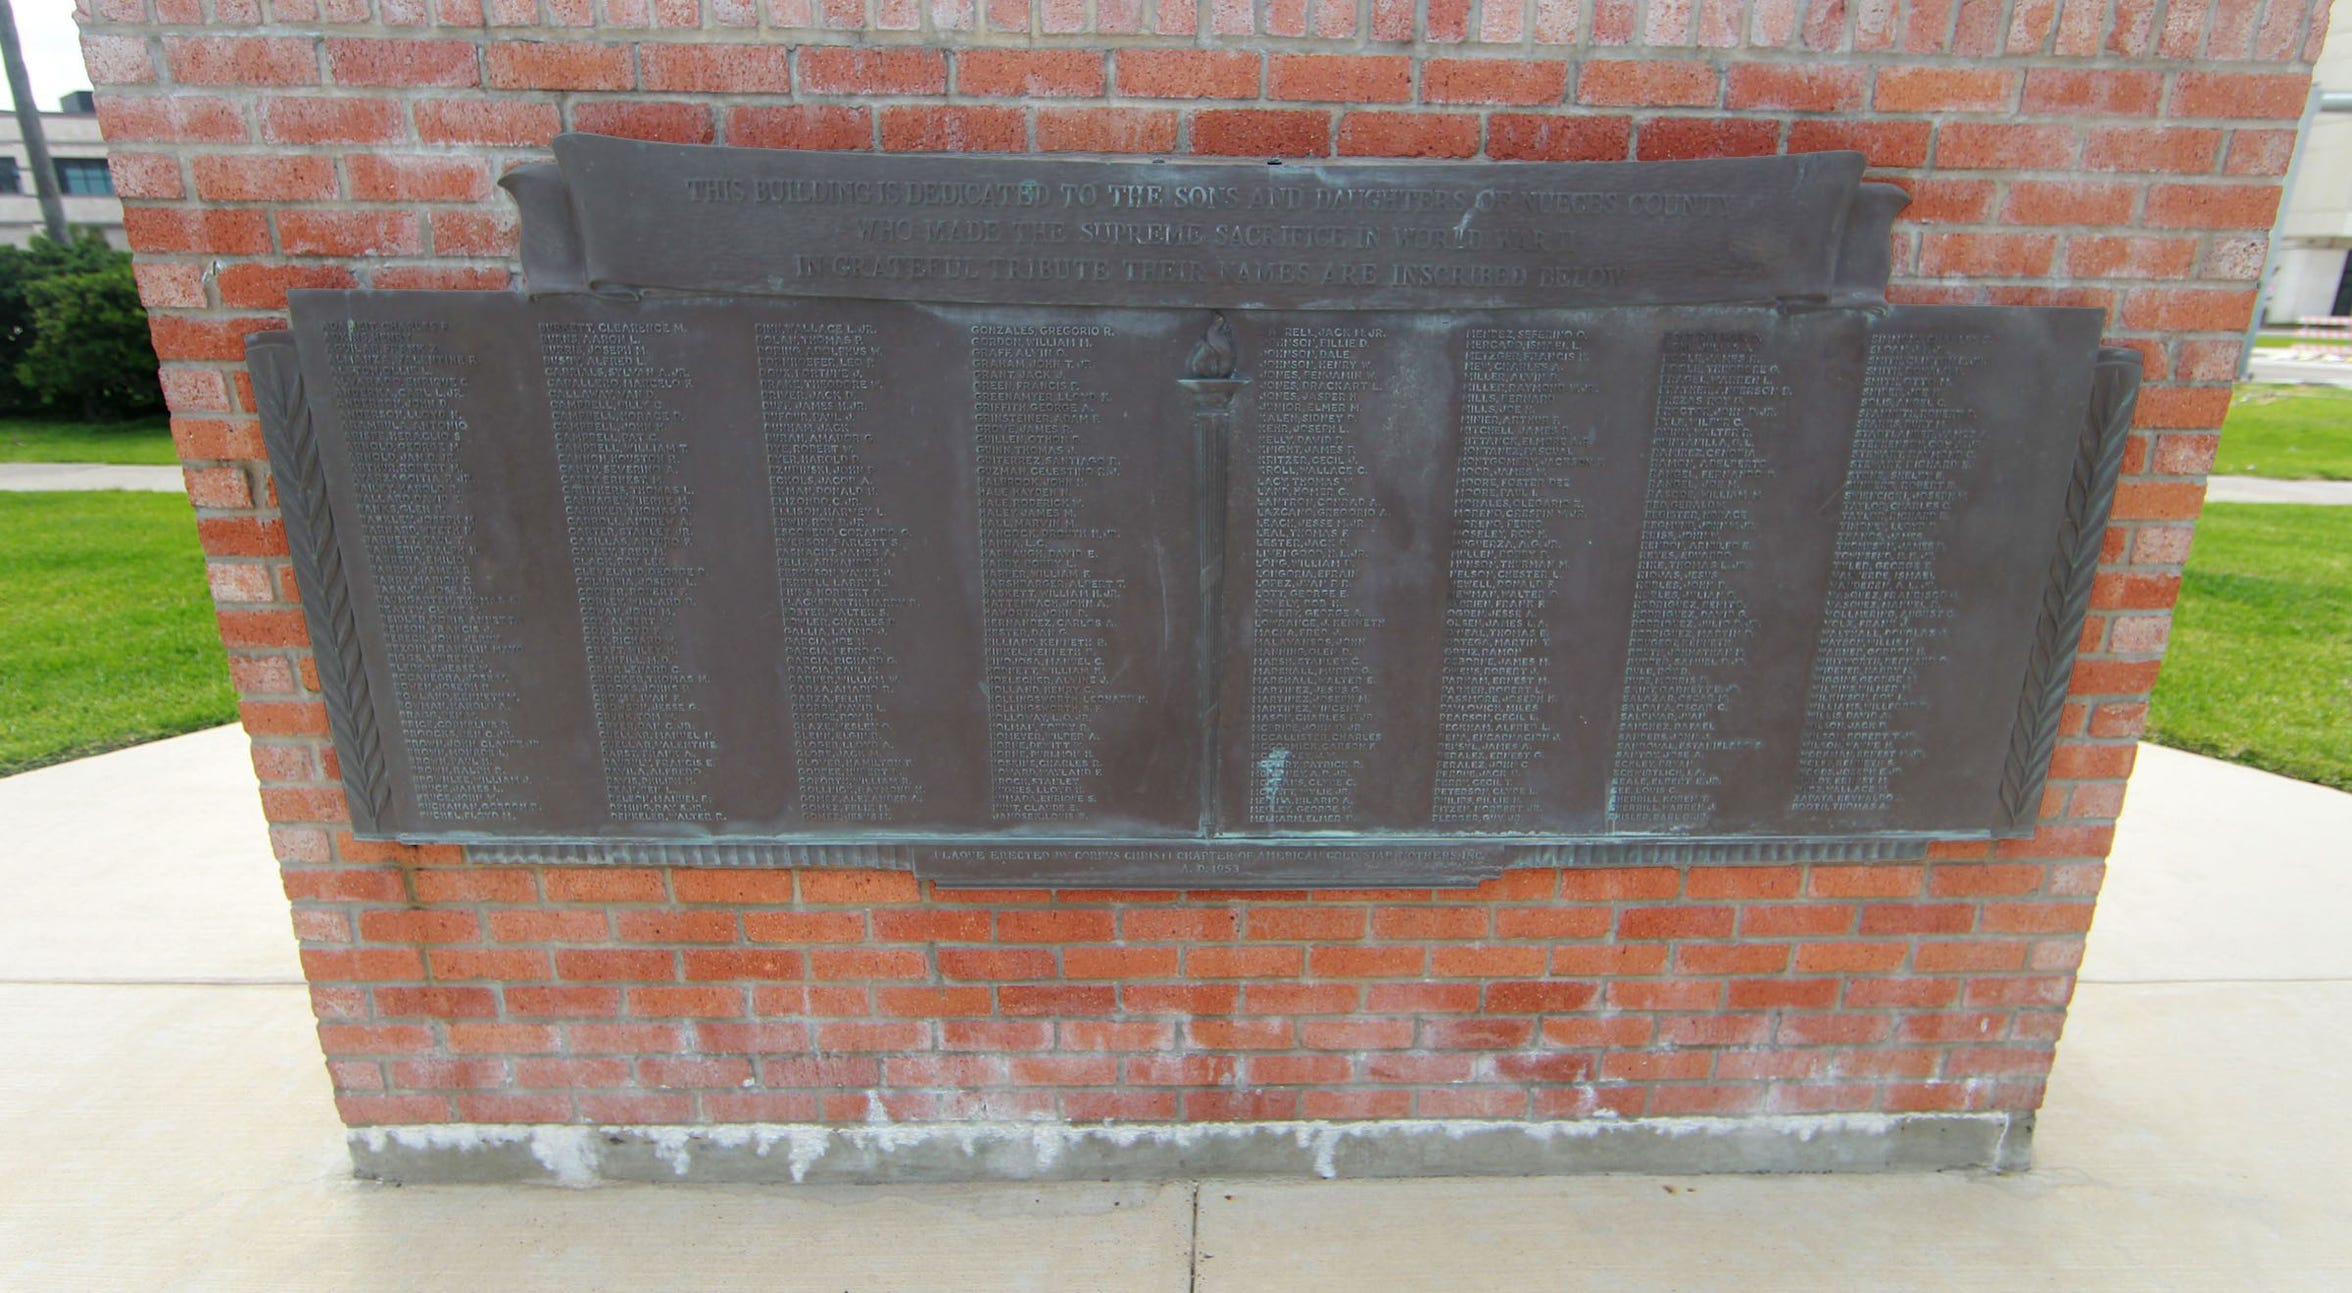 The memorial dedicated to the Nueces County service members killed in World War II was originally mounted on the Memorial Coliseum. The plaque is now in Sherrill Park and mounted on bricks salvaged from the coliseum.